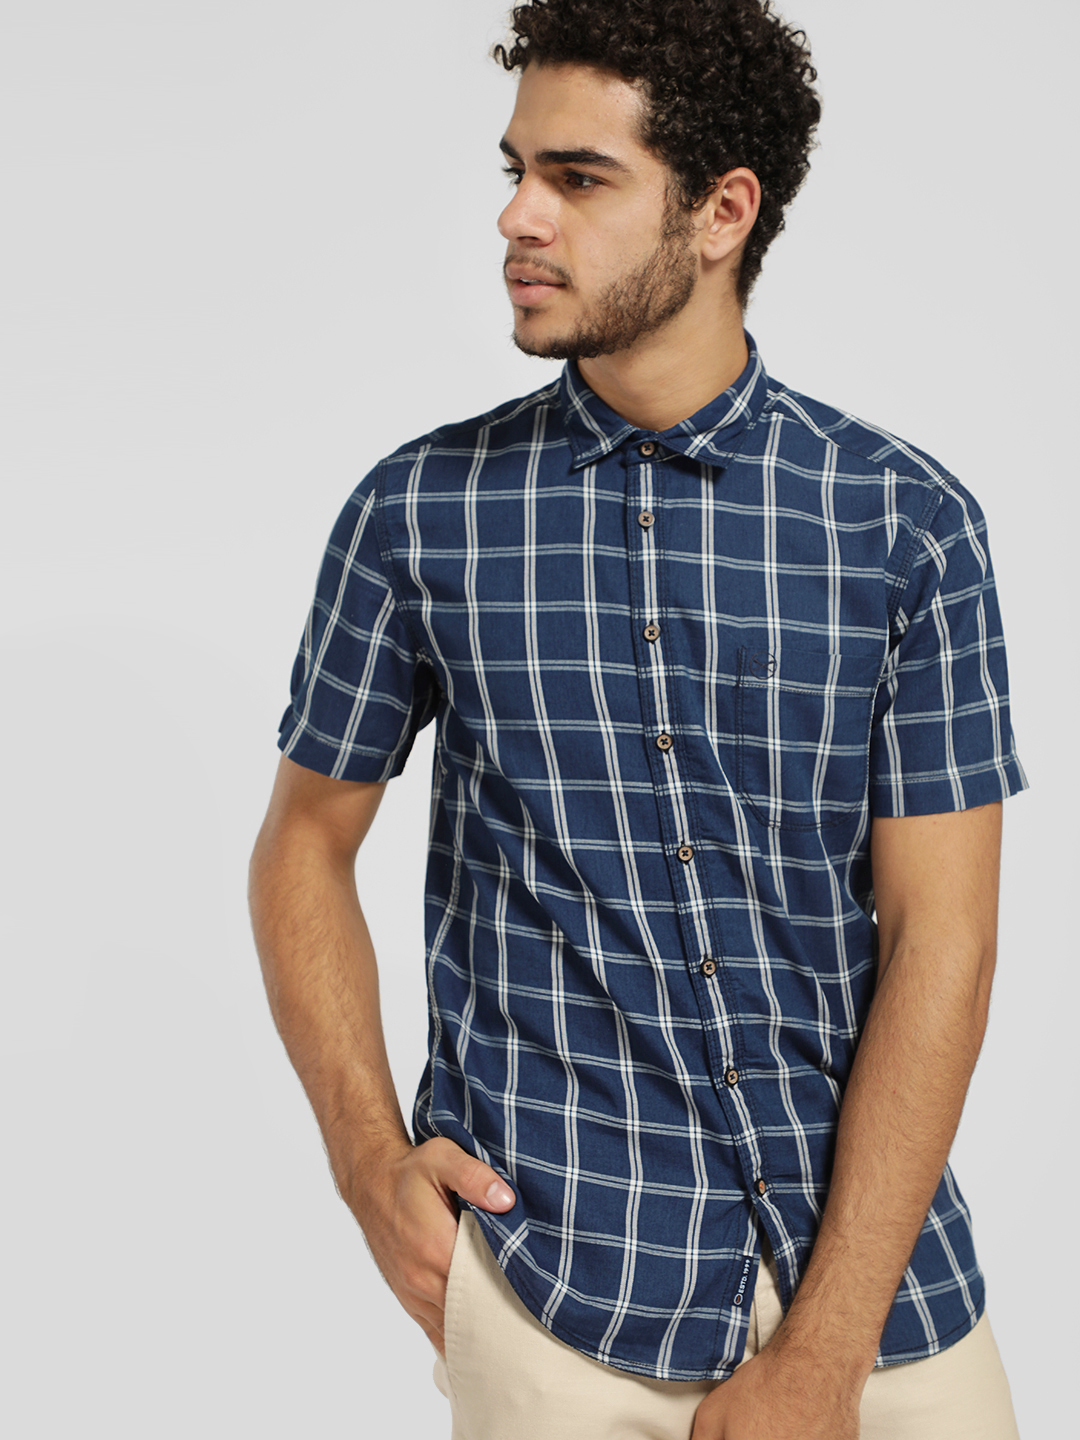 SCULLERS Multi Short Sleeve Windowpane Check Shirt 1